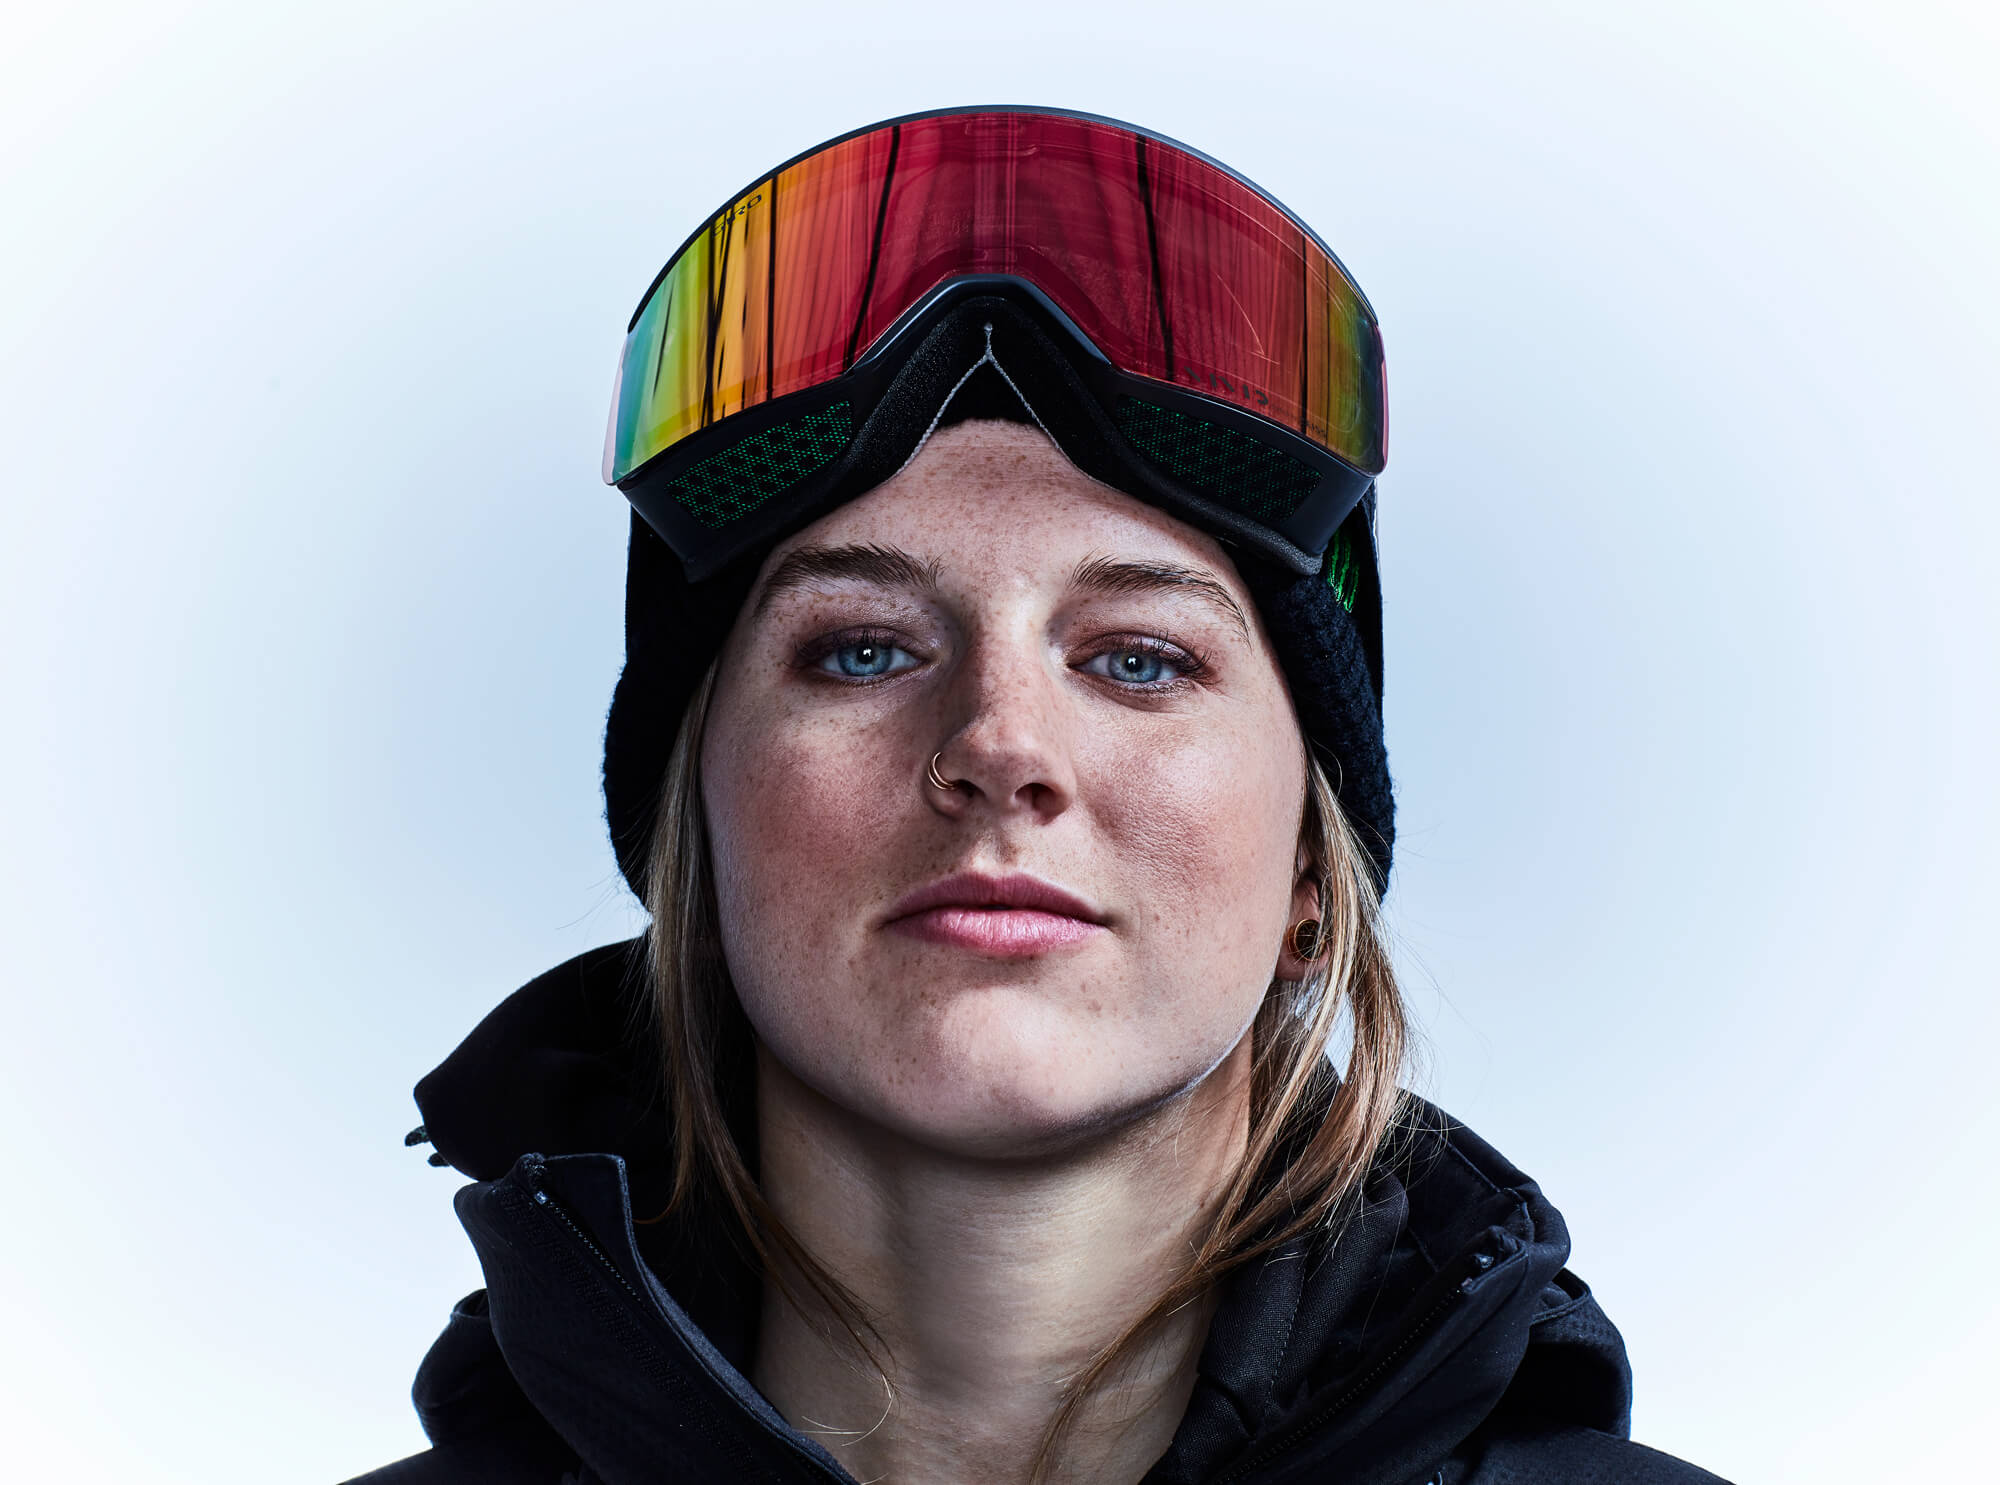 Unified Content, Unified Content Toronto, Aaron Cobb, EnRoute, athlete, portrait, athlete portraits, olympic snowboarding, olympians, snowboarding, team canada, winter games,